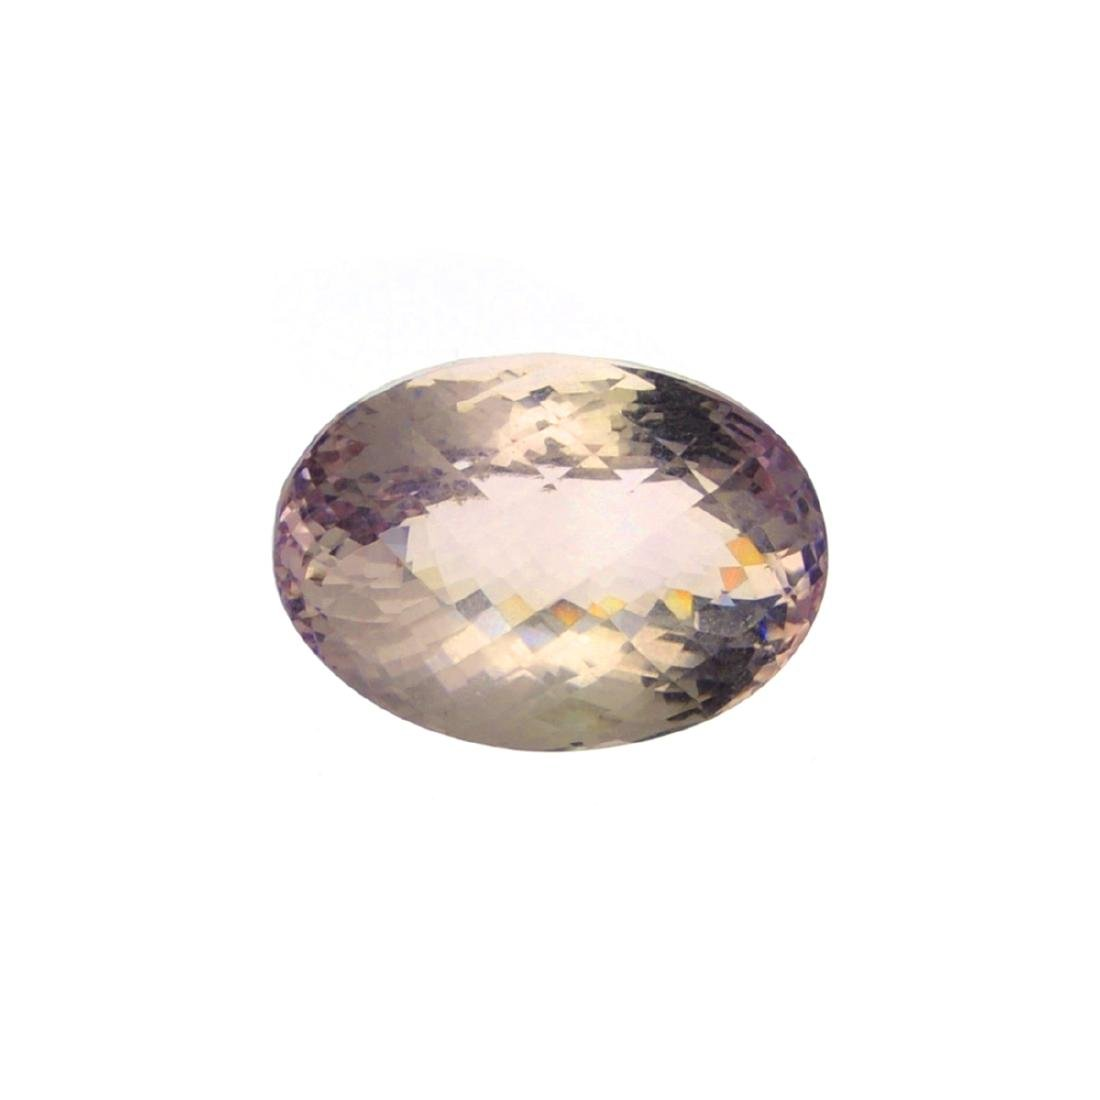 APP: 3.6k 40.50CT Oval Cut Light Purple Amethyst Quartz